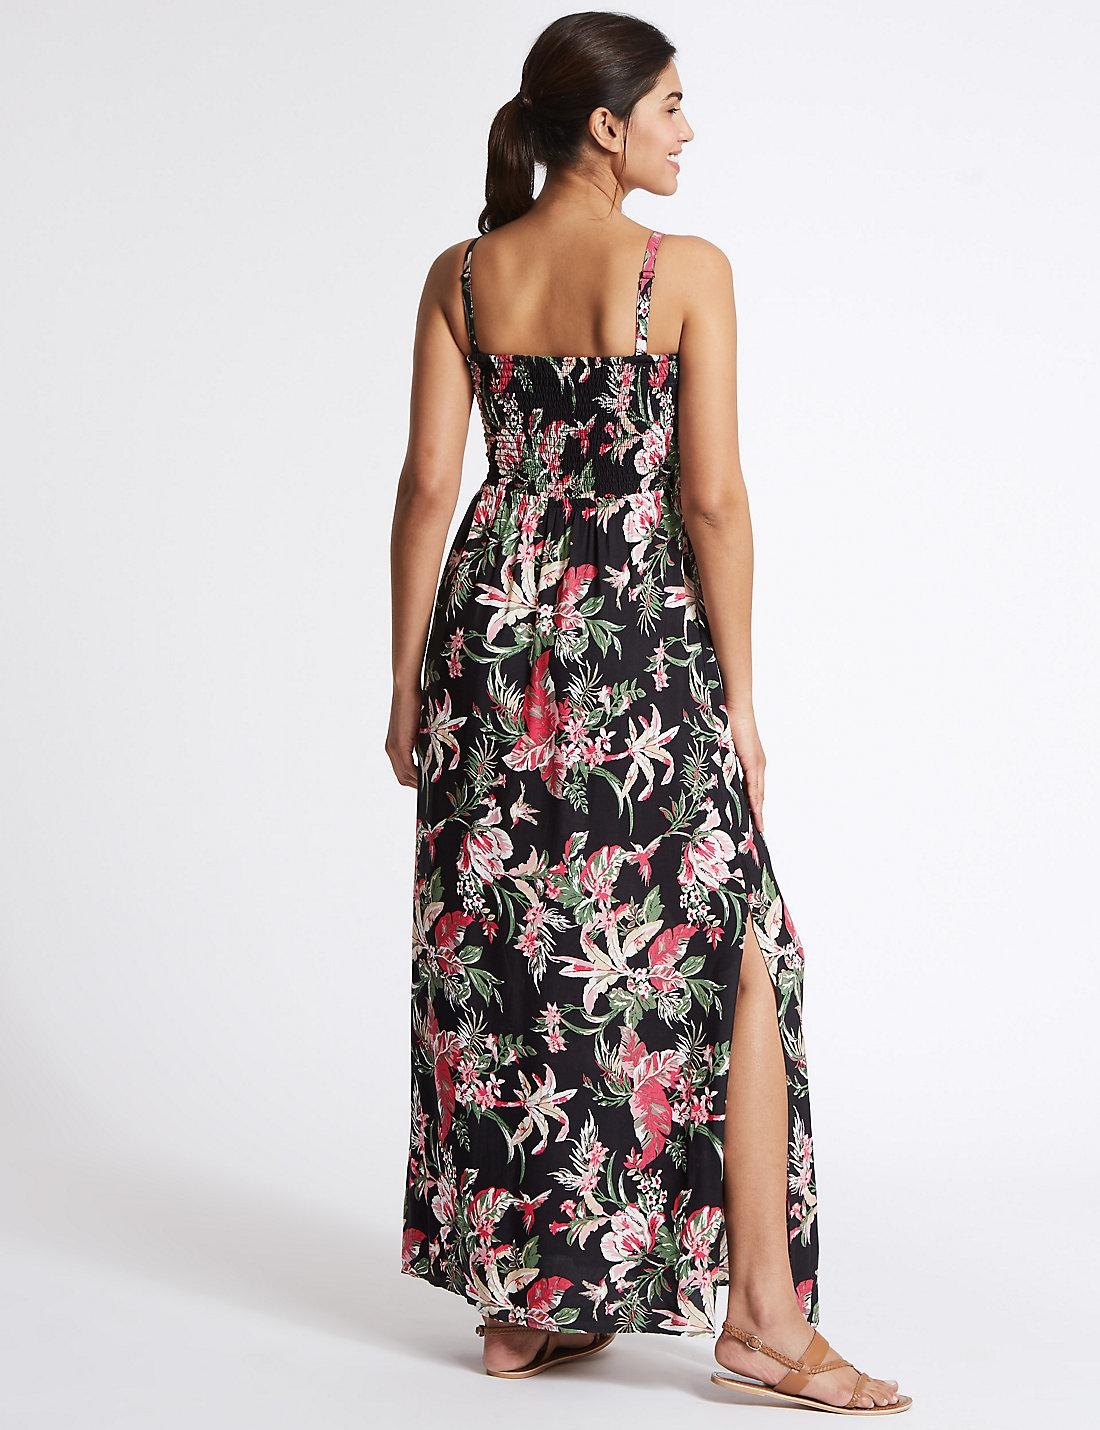 826fd70a947e Lyst - Marks   Spencer Floral Print Shirred Beach Dress in Black